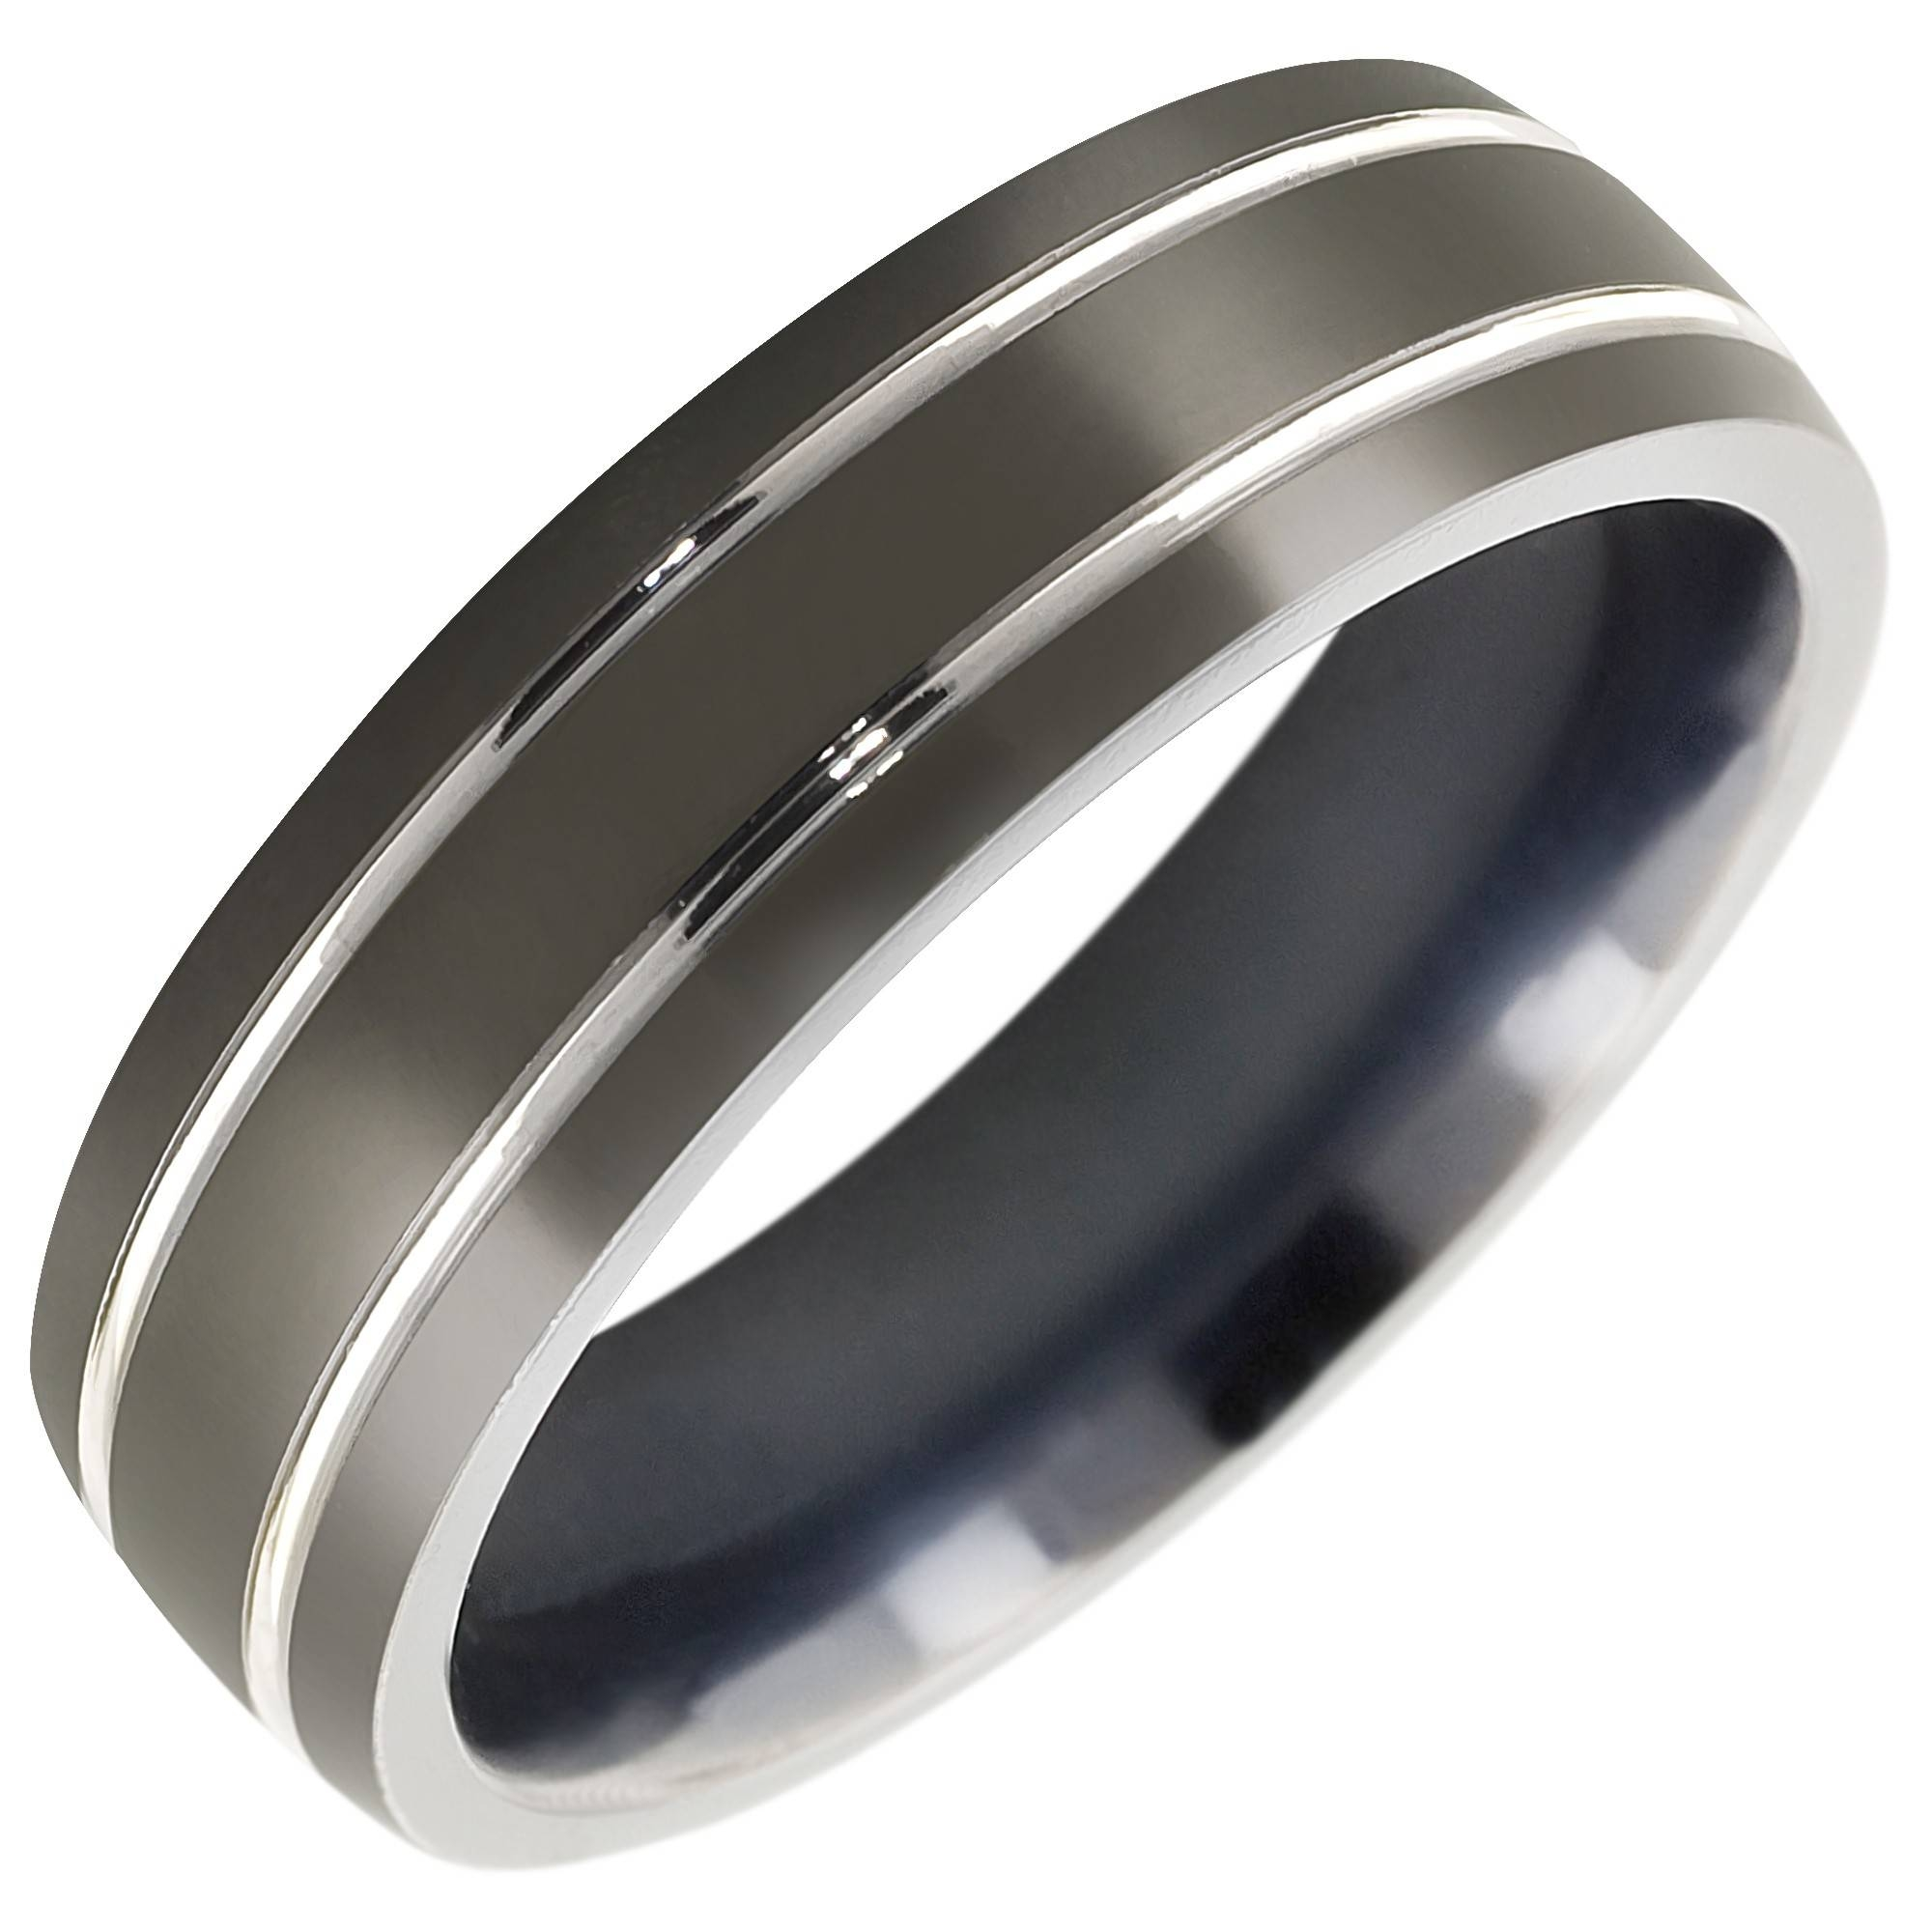 Mens Titanium Wedding Bands Are No Less Appealing Than Gold In Black Titanium Wedding Bands For Men (View 7 of 15)